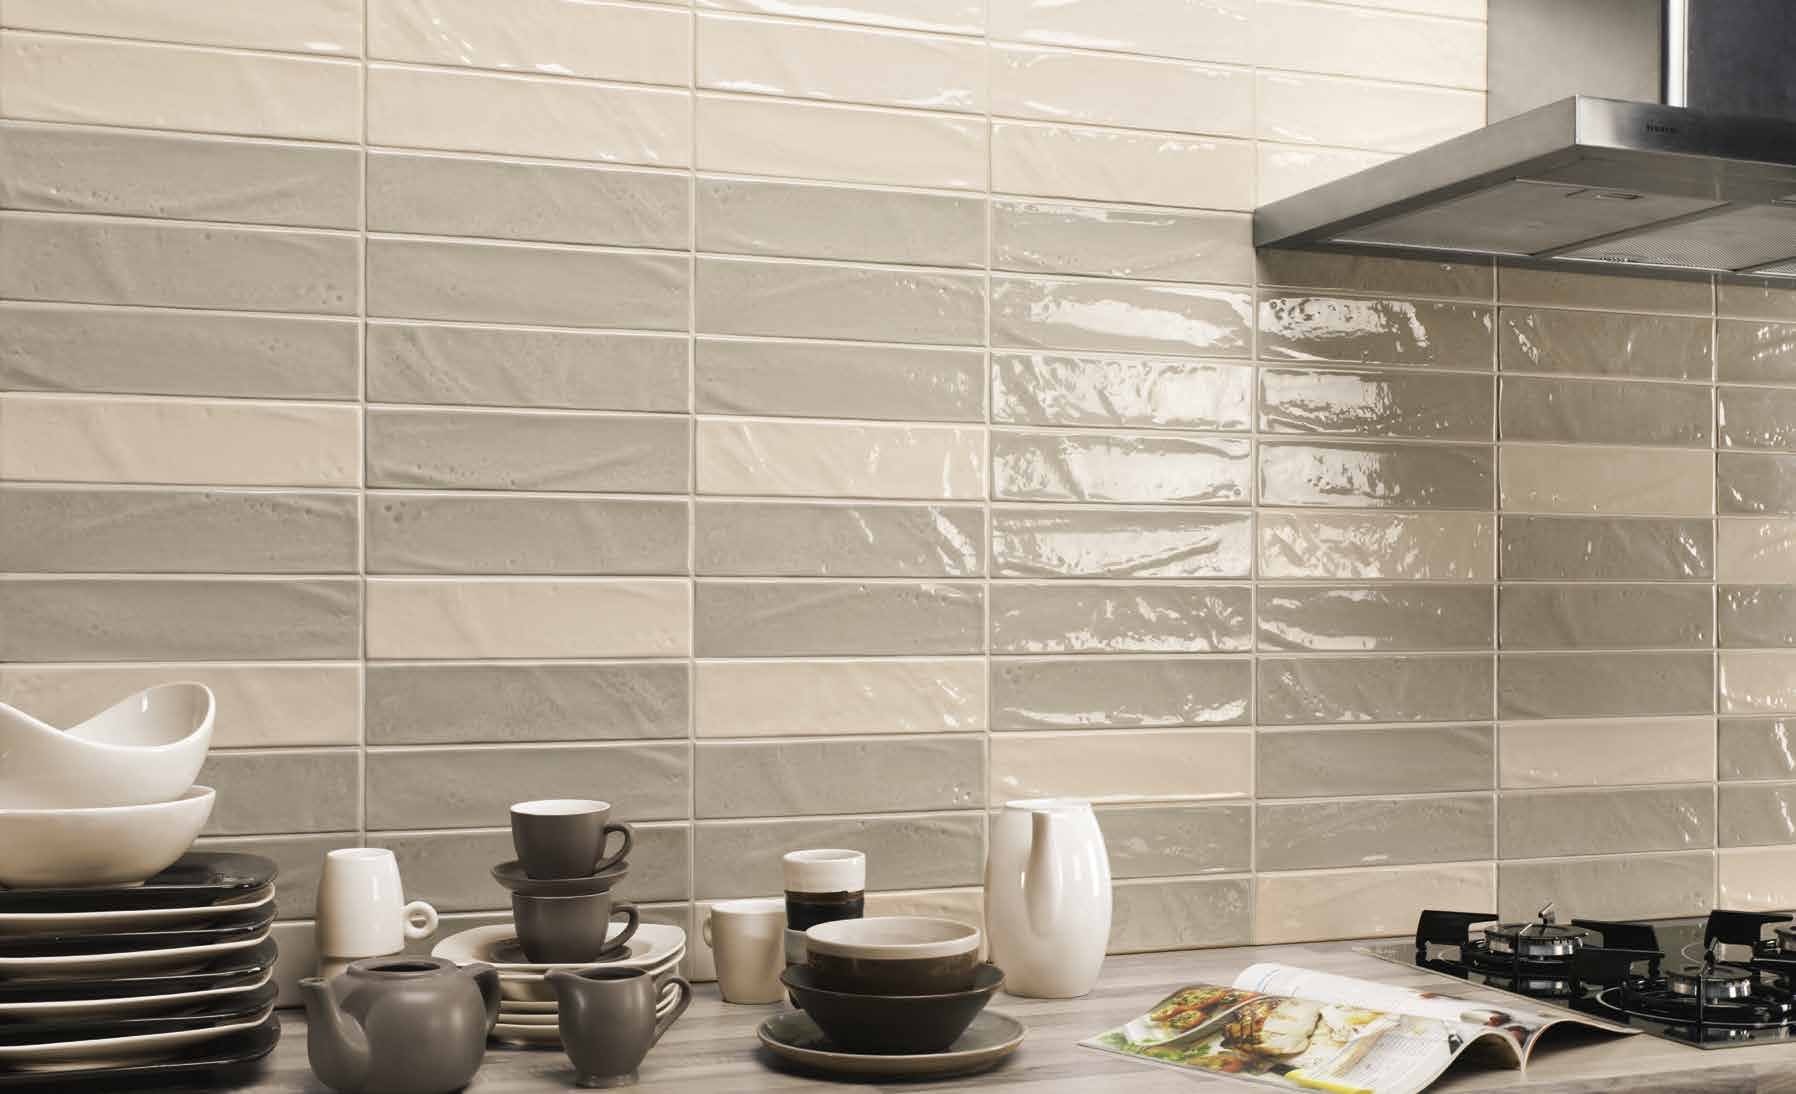 Magnificent 1200 X 600 Floor Tiles Thin 12X12 Ceiling Tiles Asbestos Round 12X24 Ceramic Tile Patterns 2X4 Acoustical Ceiling Tiles Young 3 By 6 Subway Tile Brown6 X 6 Tiles Ceramic Adding New Tile Collections | SOCI